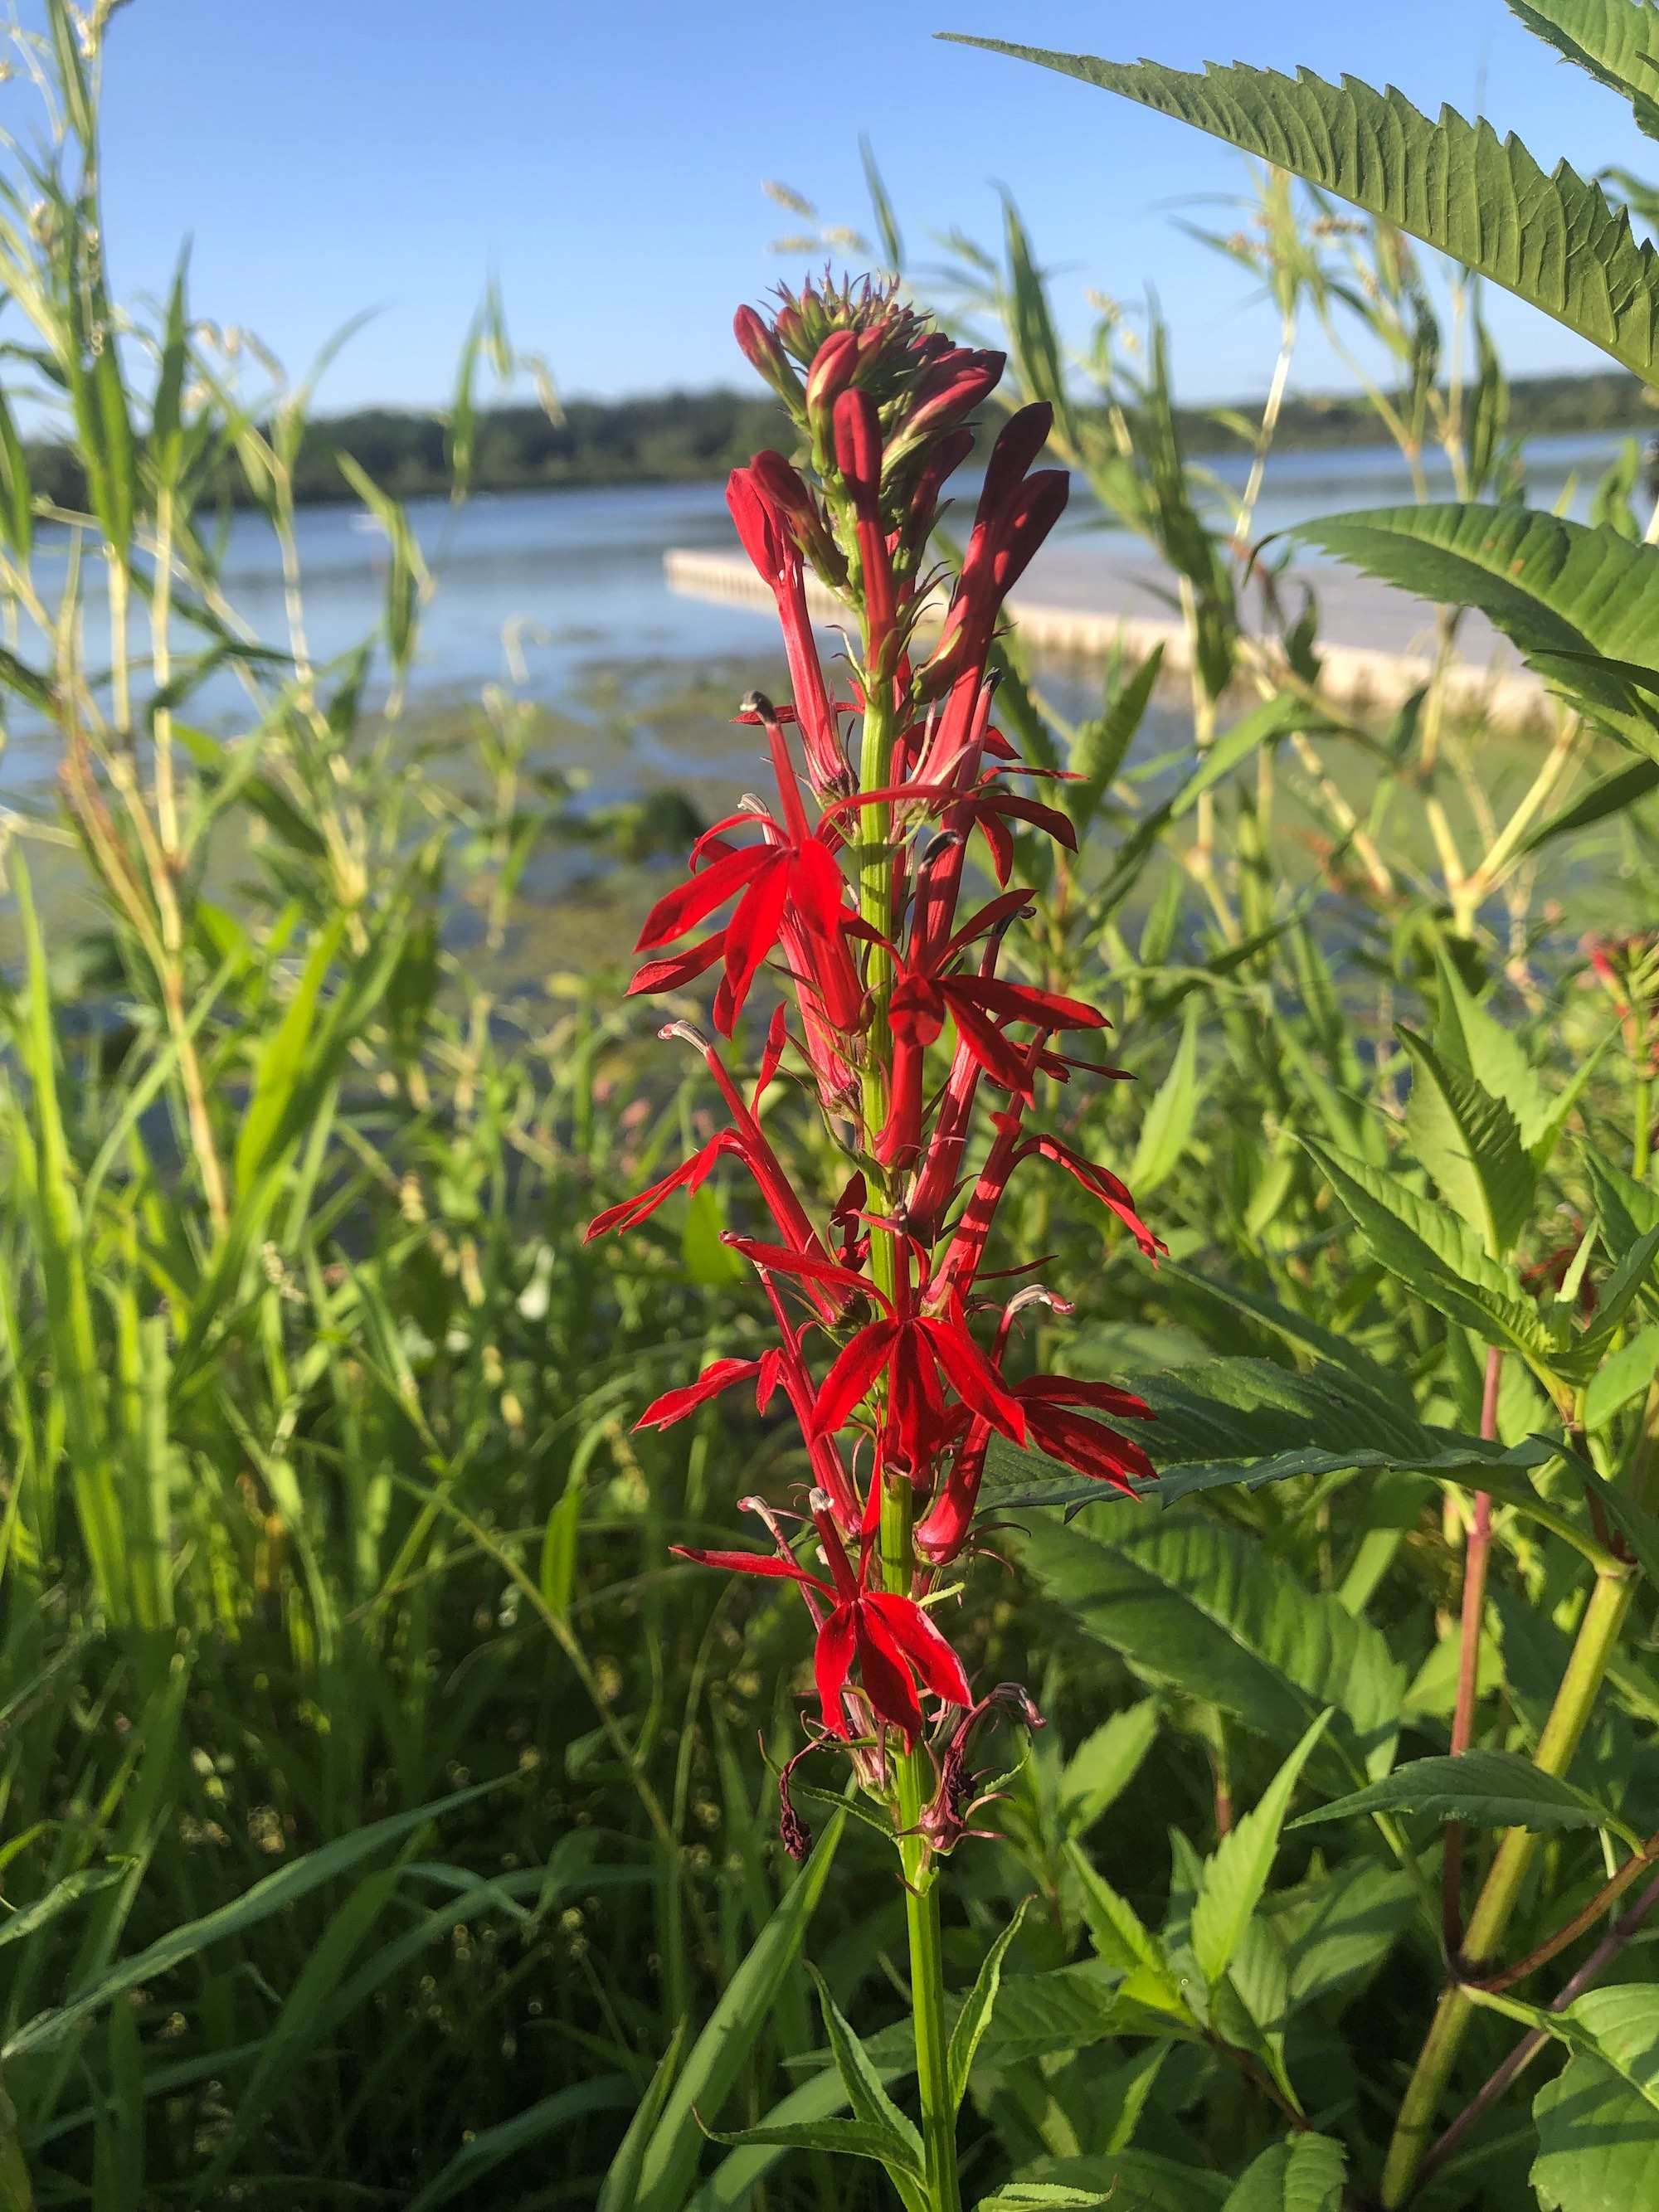 Cardinal Flower on shore of Lake Wingra in Wingra Park in Madison, Wisconsin on July 30, 2020.